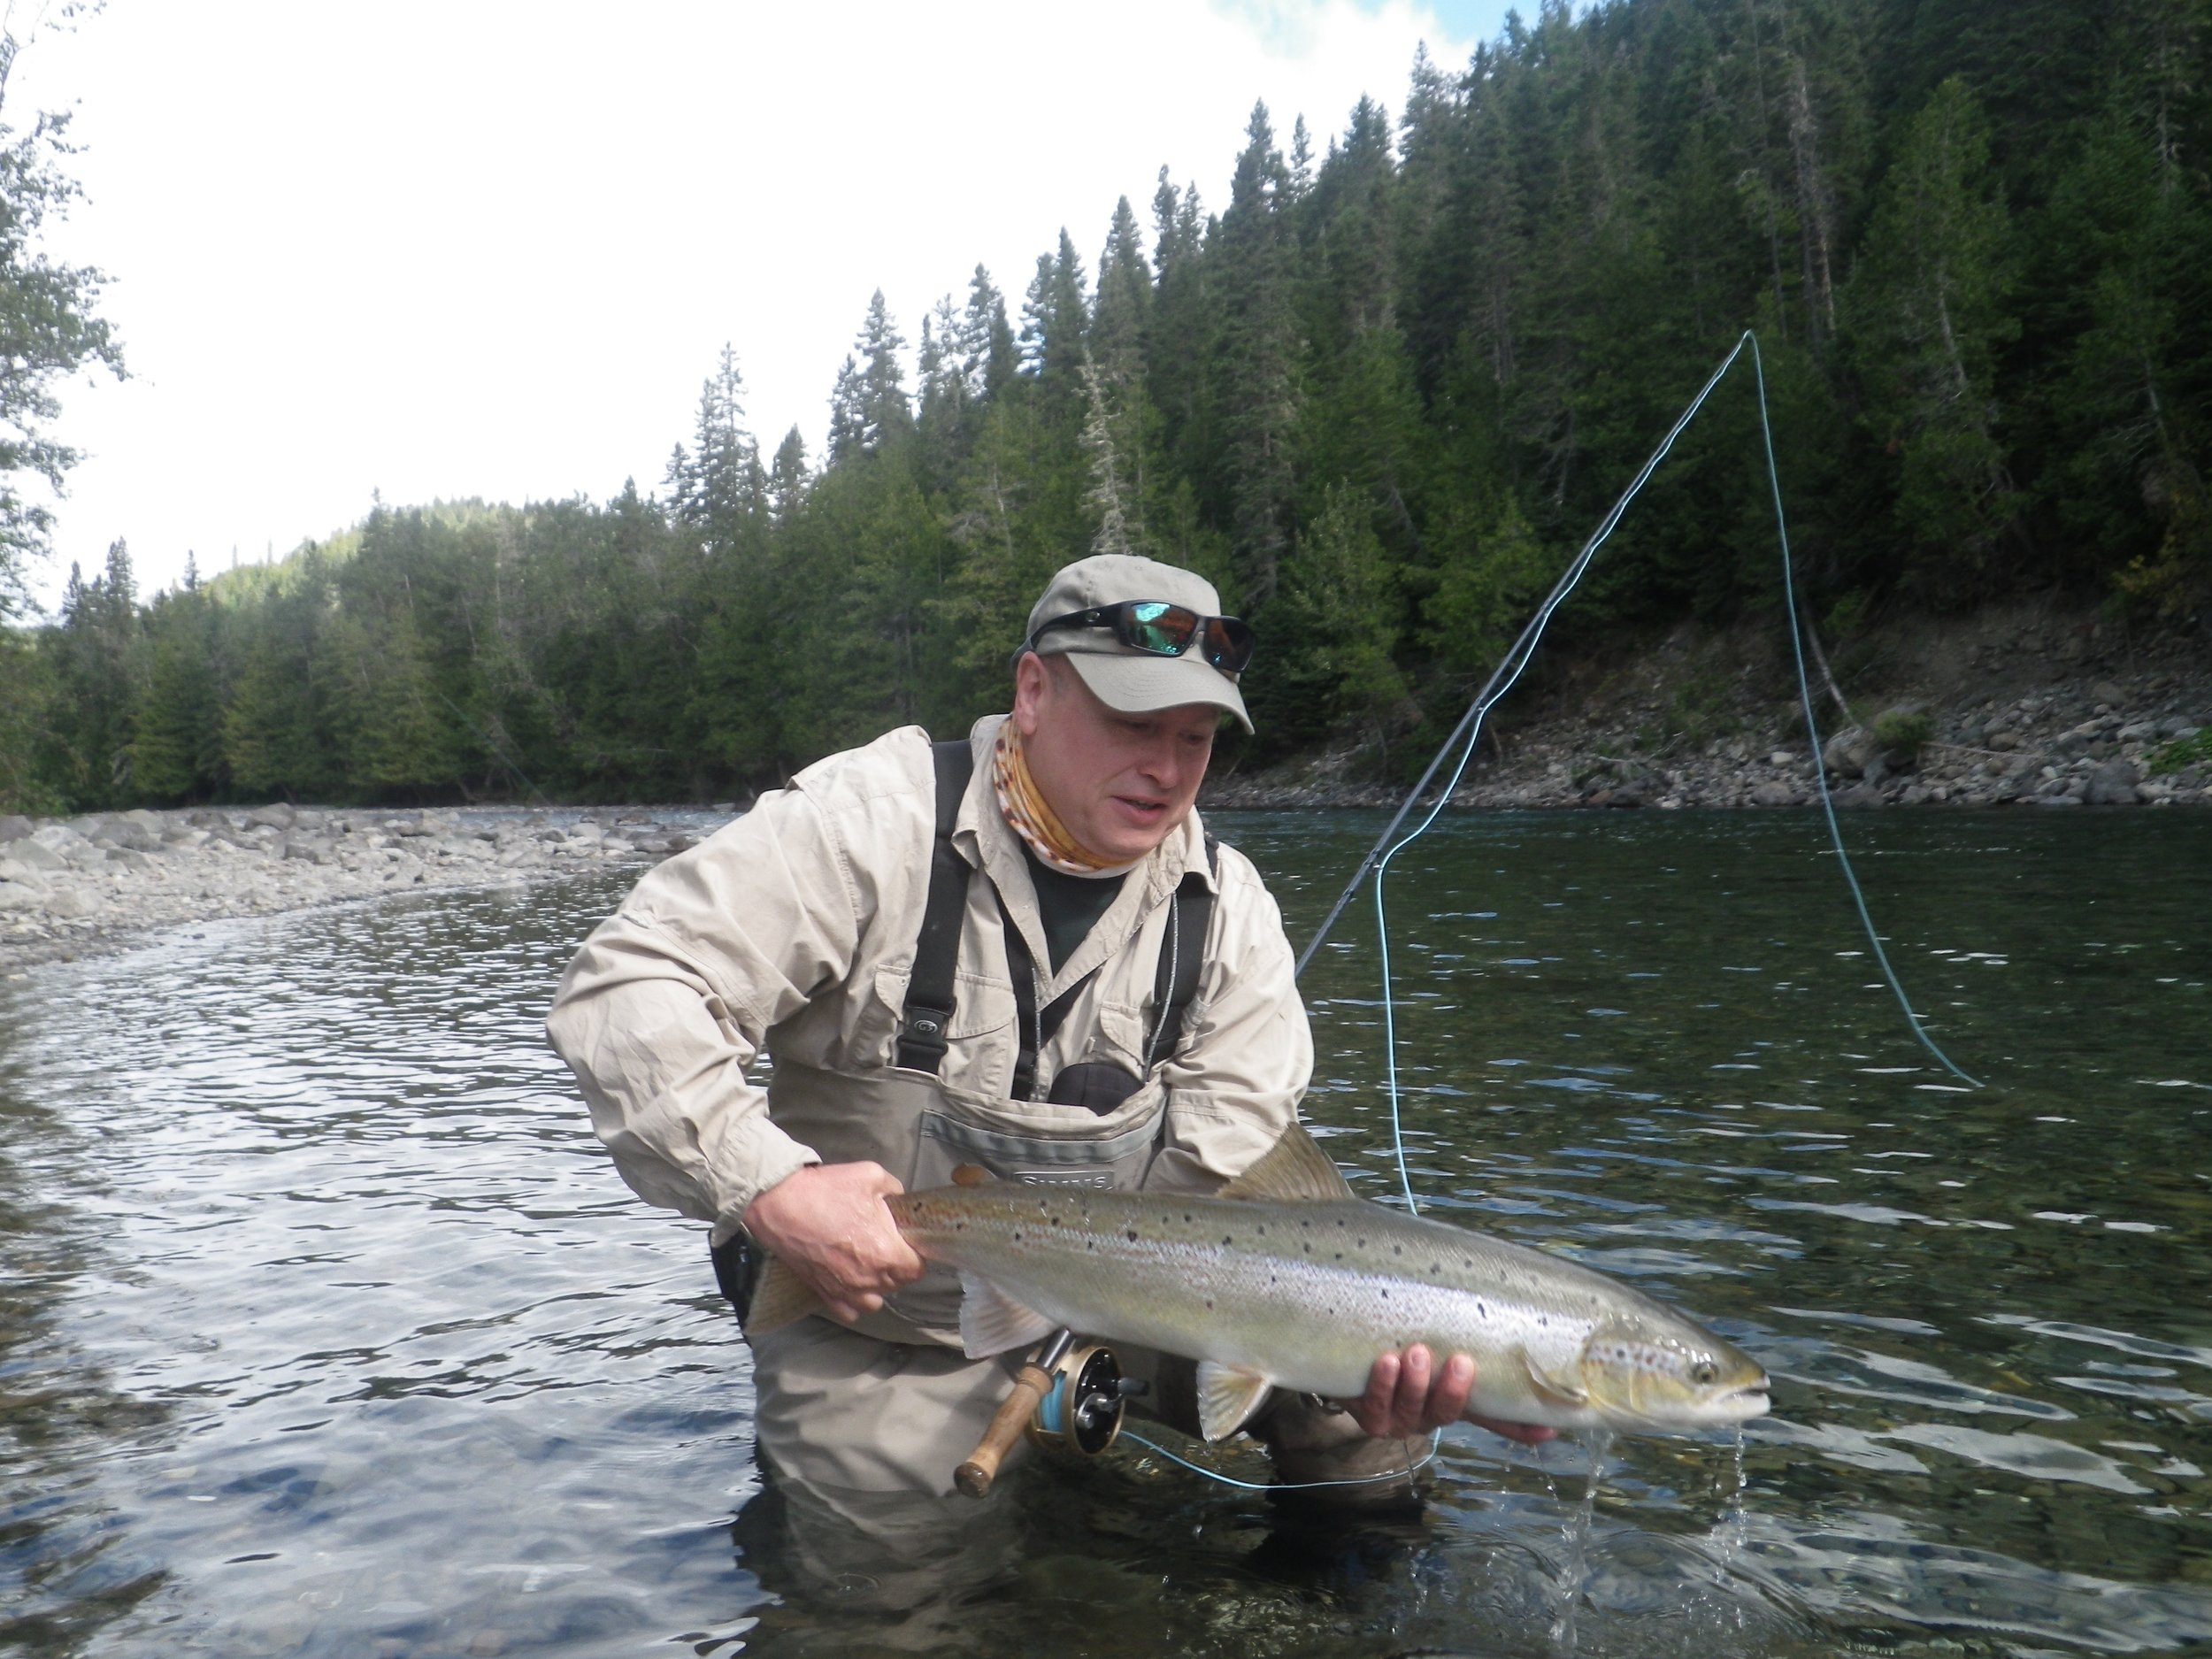 Tom Harkness has been a regular at Camp Bonaventure for over 20 years, here he is with a nice one from the Bonaventure,Congratulations Tom!